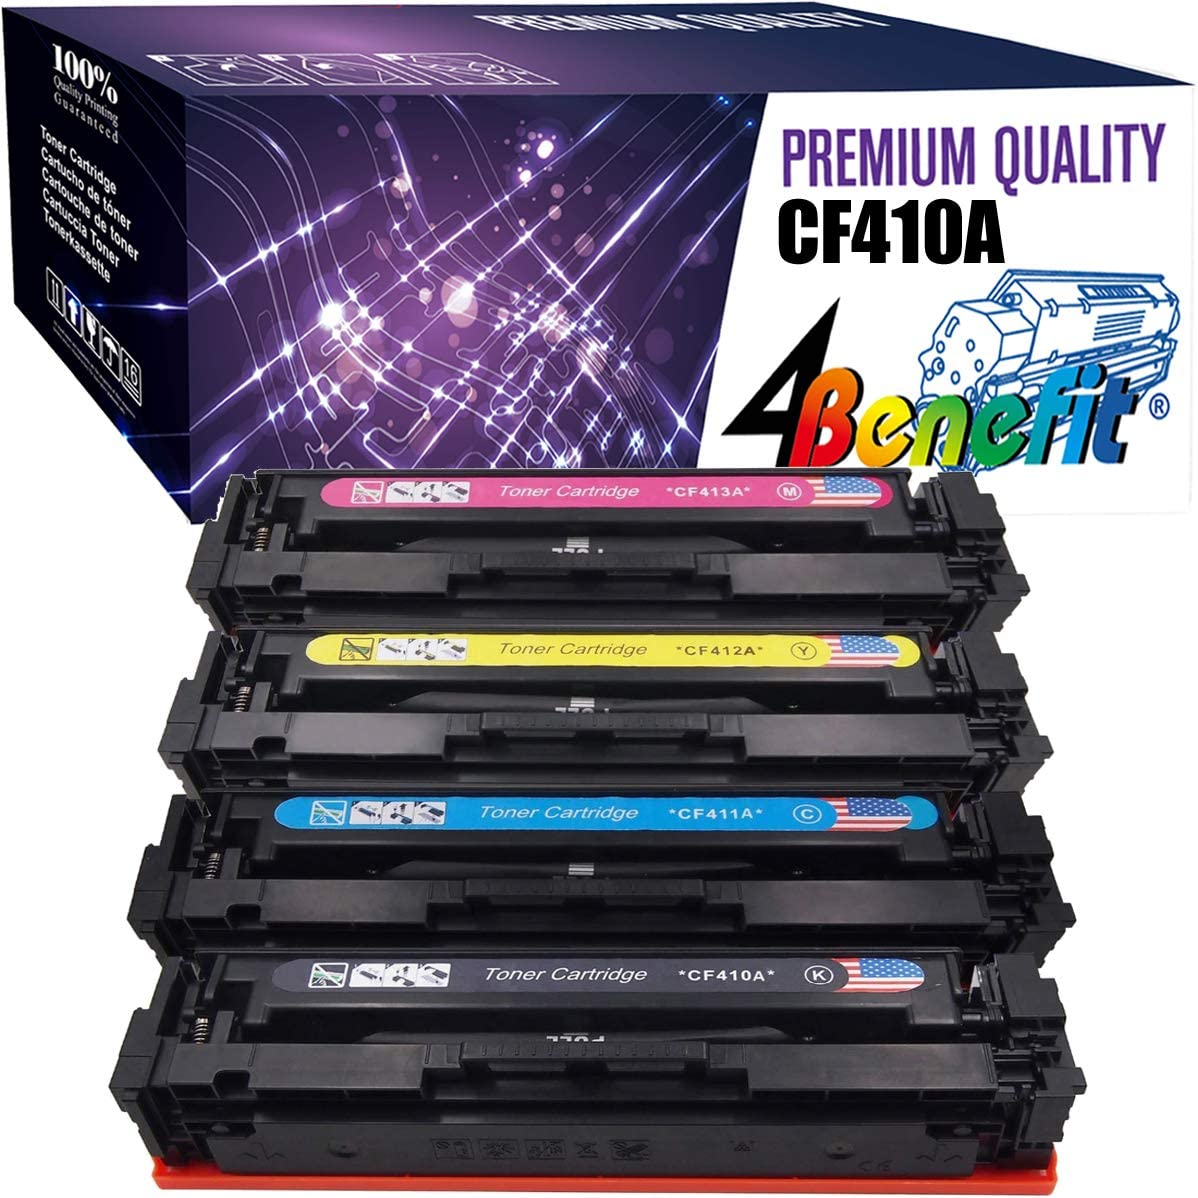 Compatible Toner Cartridges Replacement for HP 410A CF410A CF411A CF412A CF413A for HP M377dw M452dn M452nw M477fdw M477fnw Laser Printer with Chips-Combination